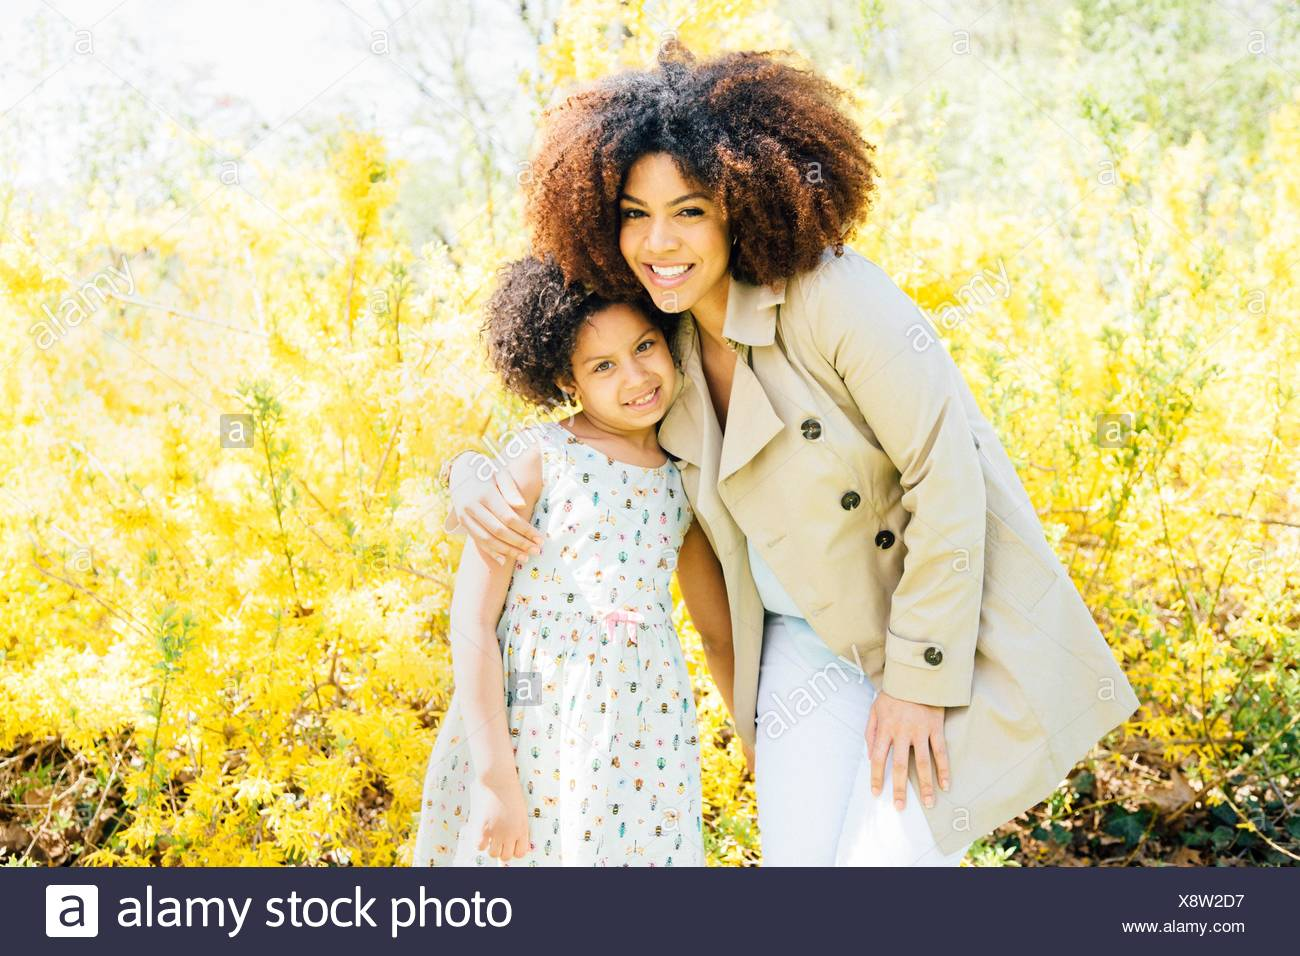 Portrait of mother with arm around daughter, looking at camera, smiling - Stock Image